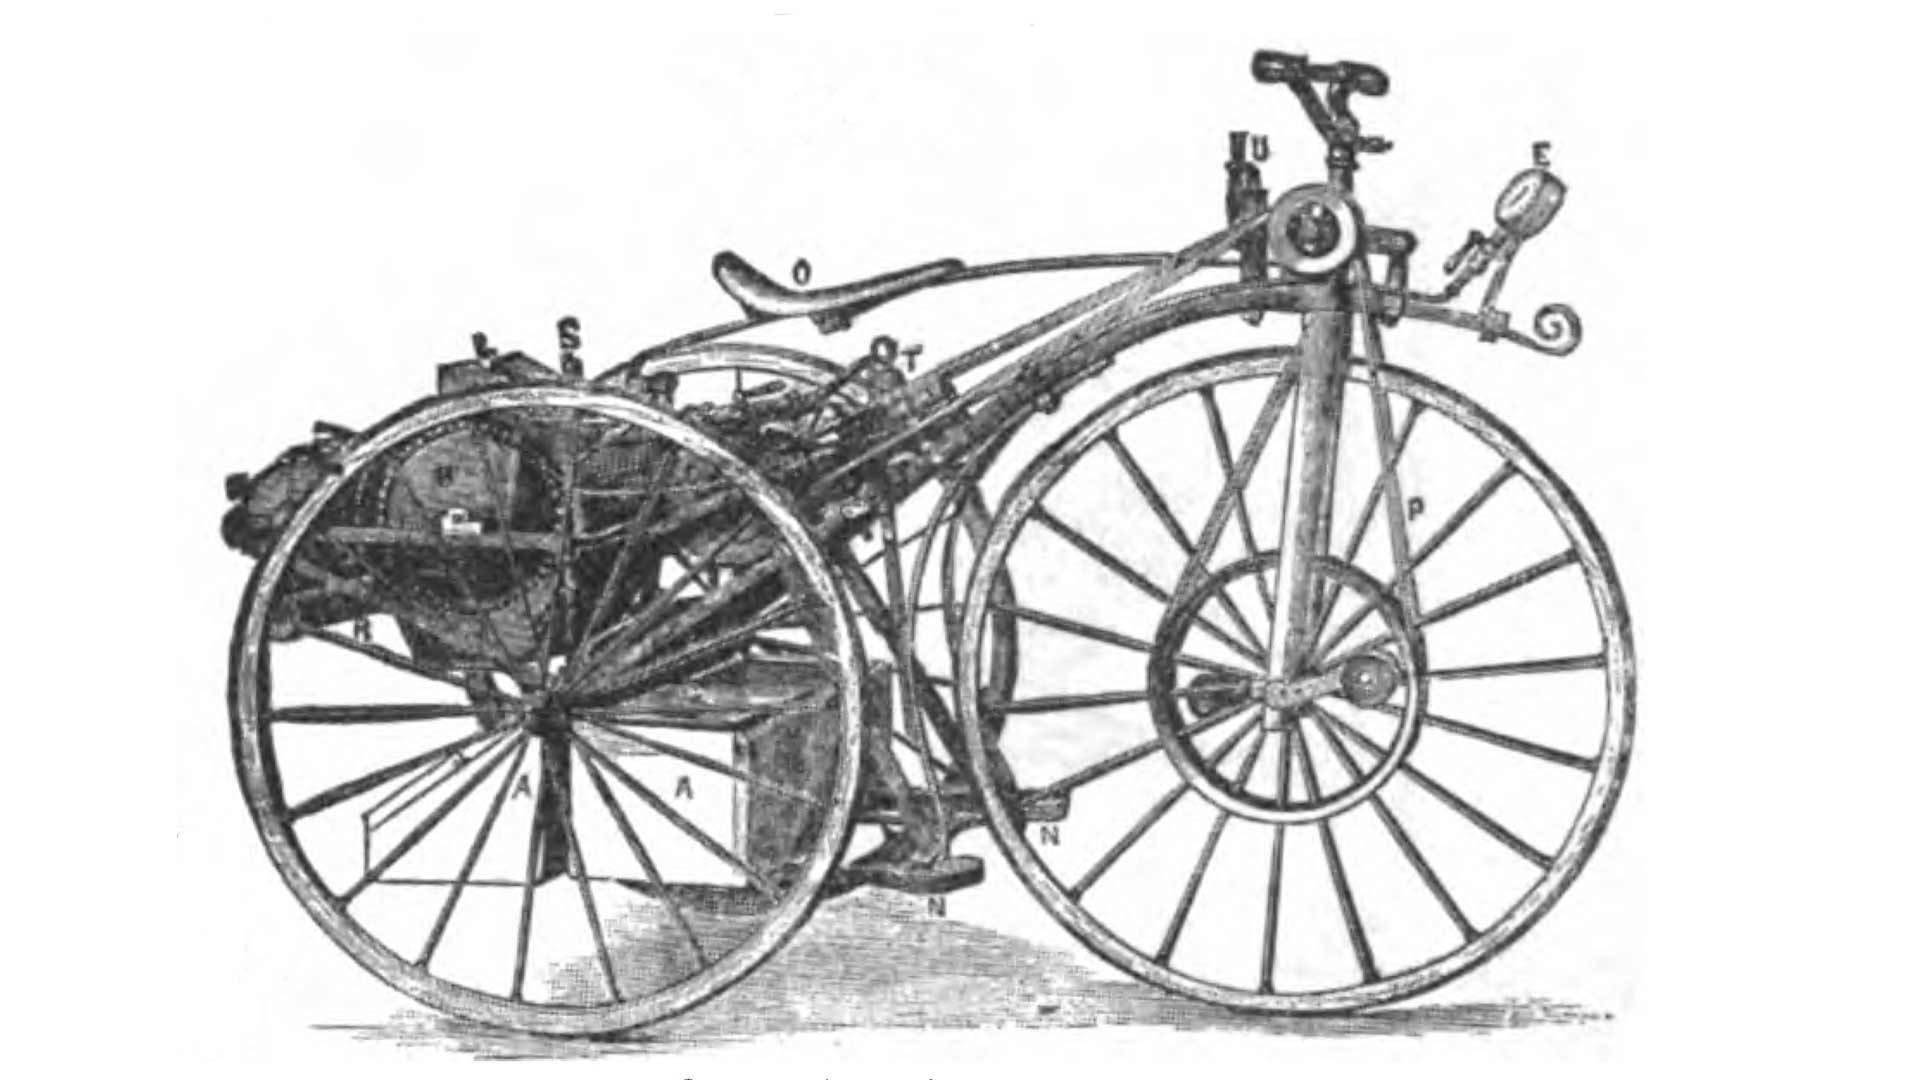 Ask RideApart: What Was the First Motorcycle Ever Built